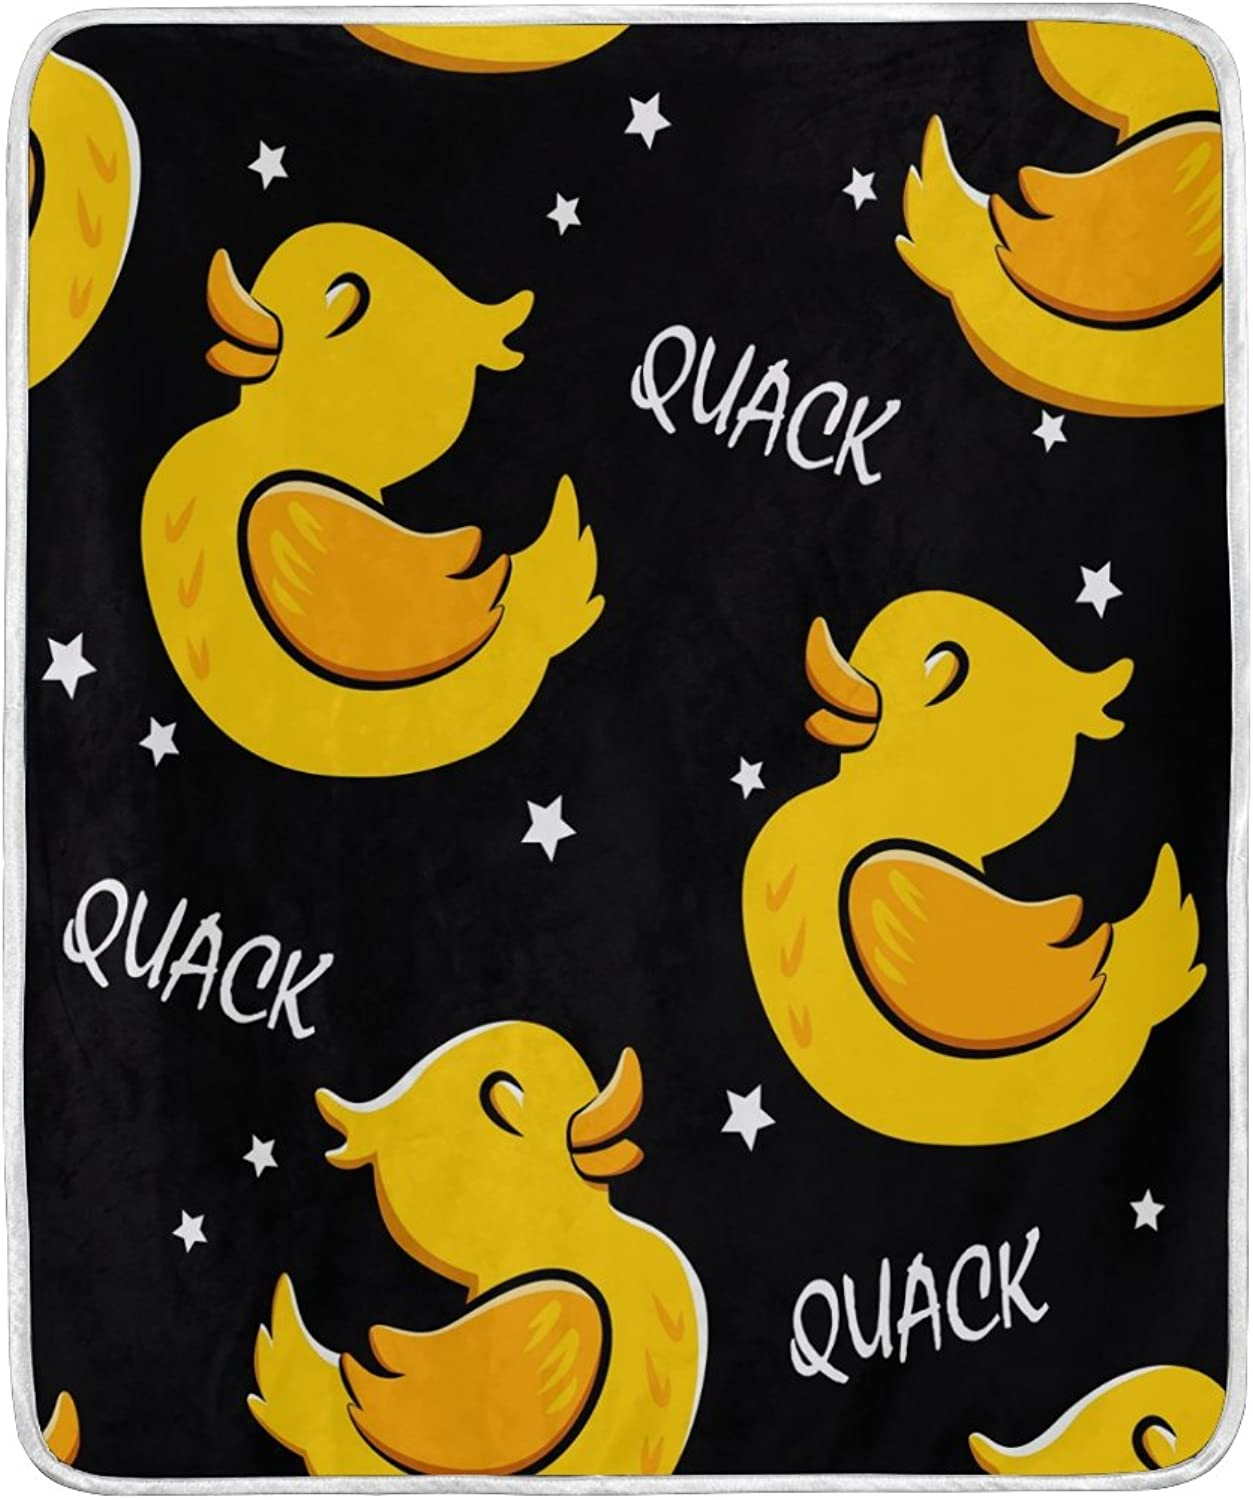 ALAZA Home Decor Hipster Cartoon Duck Star Black Blanket Soft Warm Blankets for Bed Couch Sofa Lightweight Travelling Camping 60 x 50 inch Throw Size for Kids Boys Women